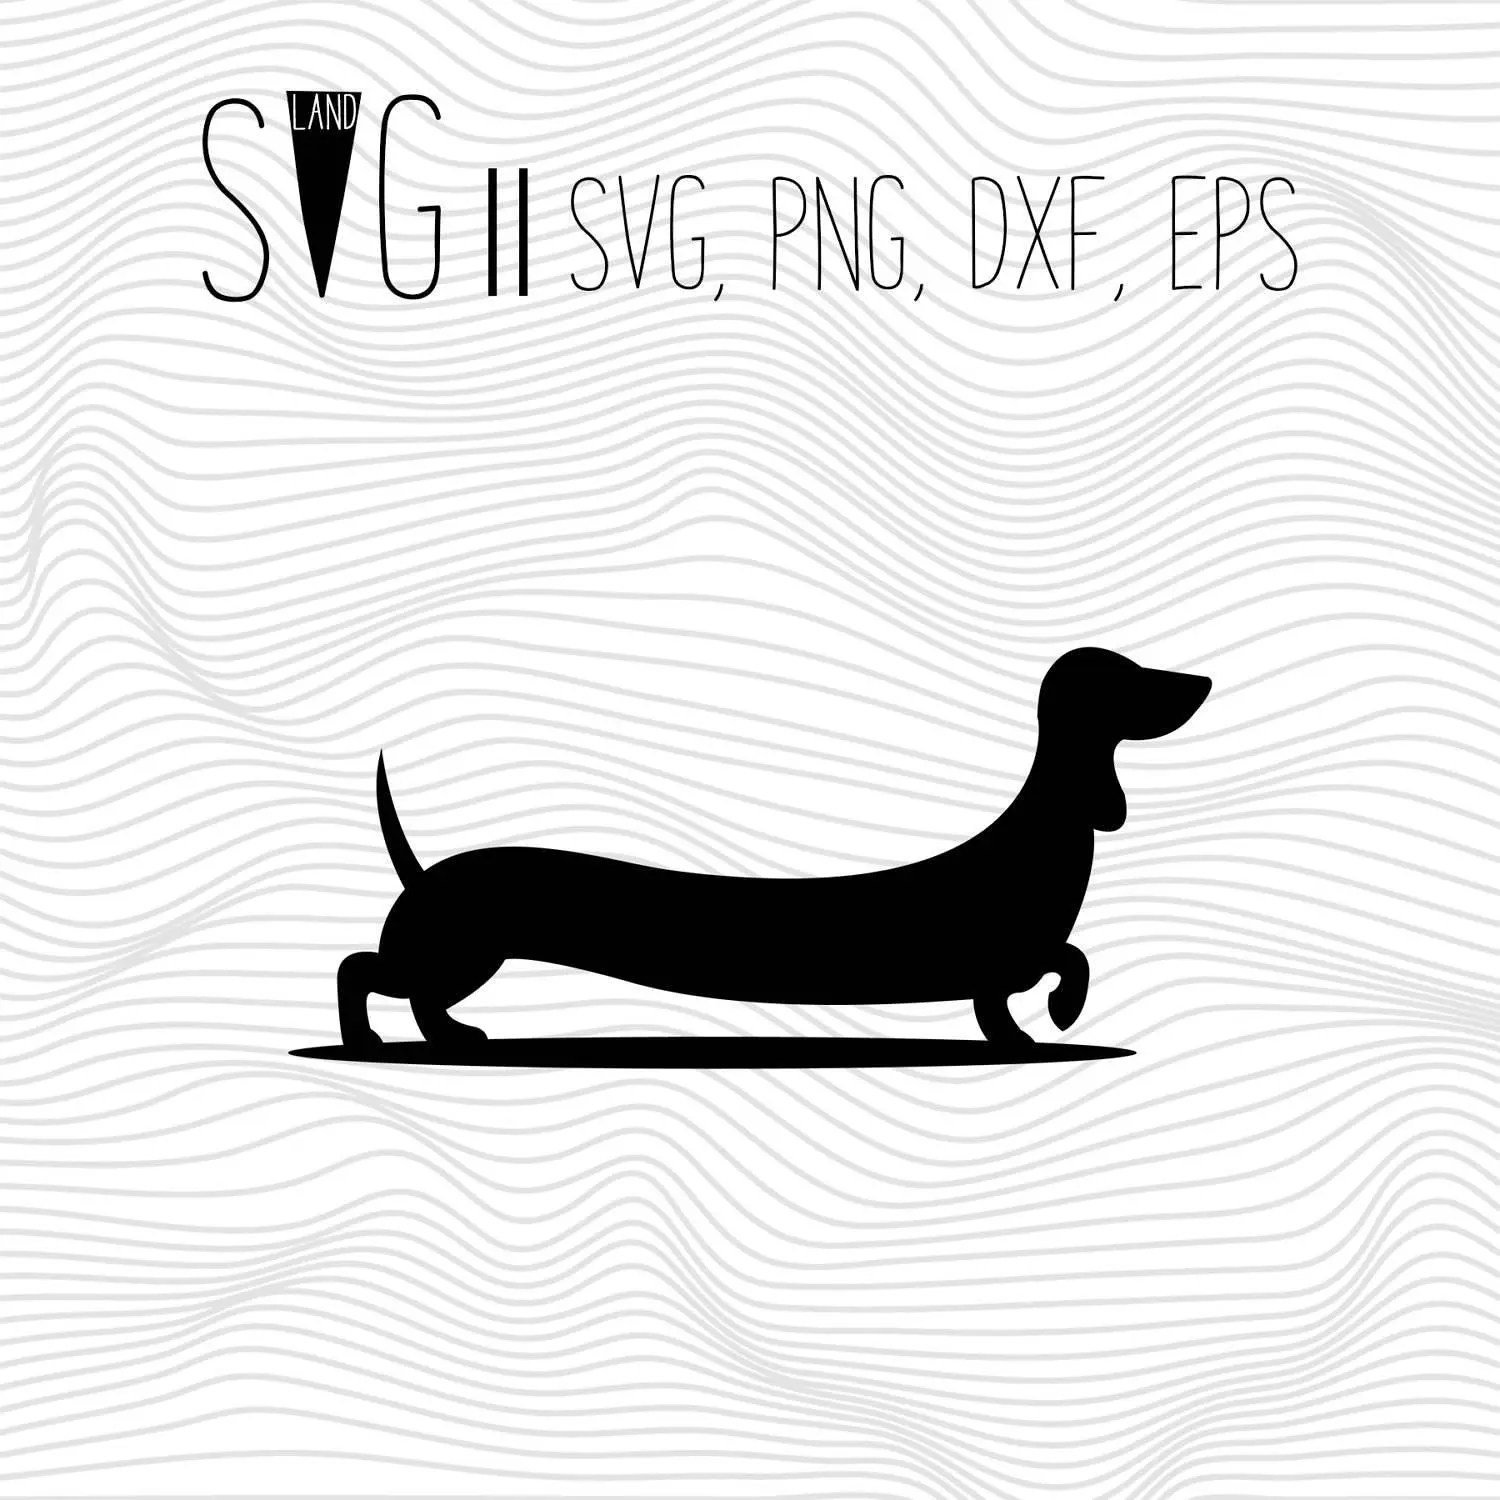 Dachshund Svg Dog Svg Stencils Animal Silhouette Svg Svg